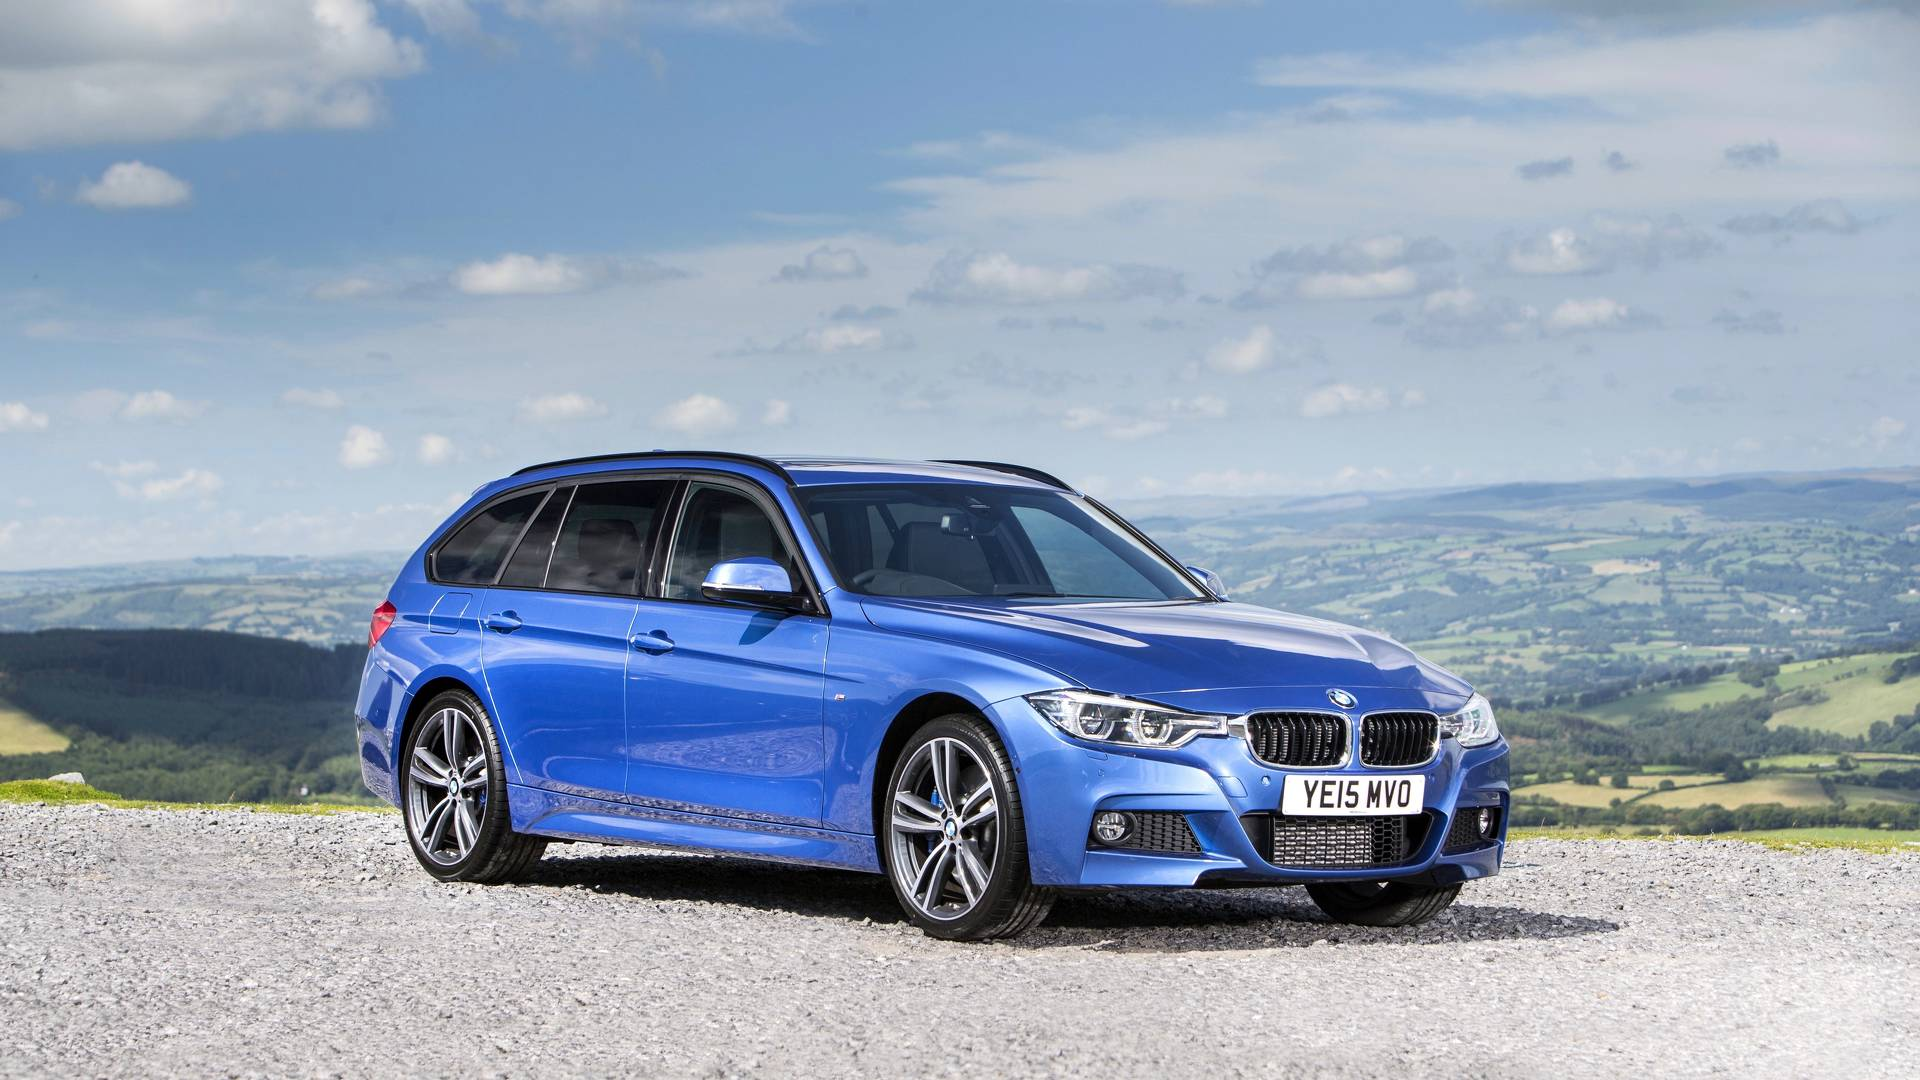 2015 Bmw 3 Series Touring Review Practical And Fun